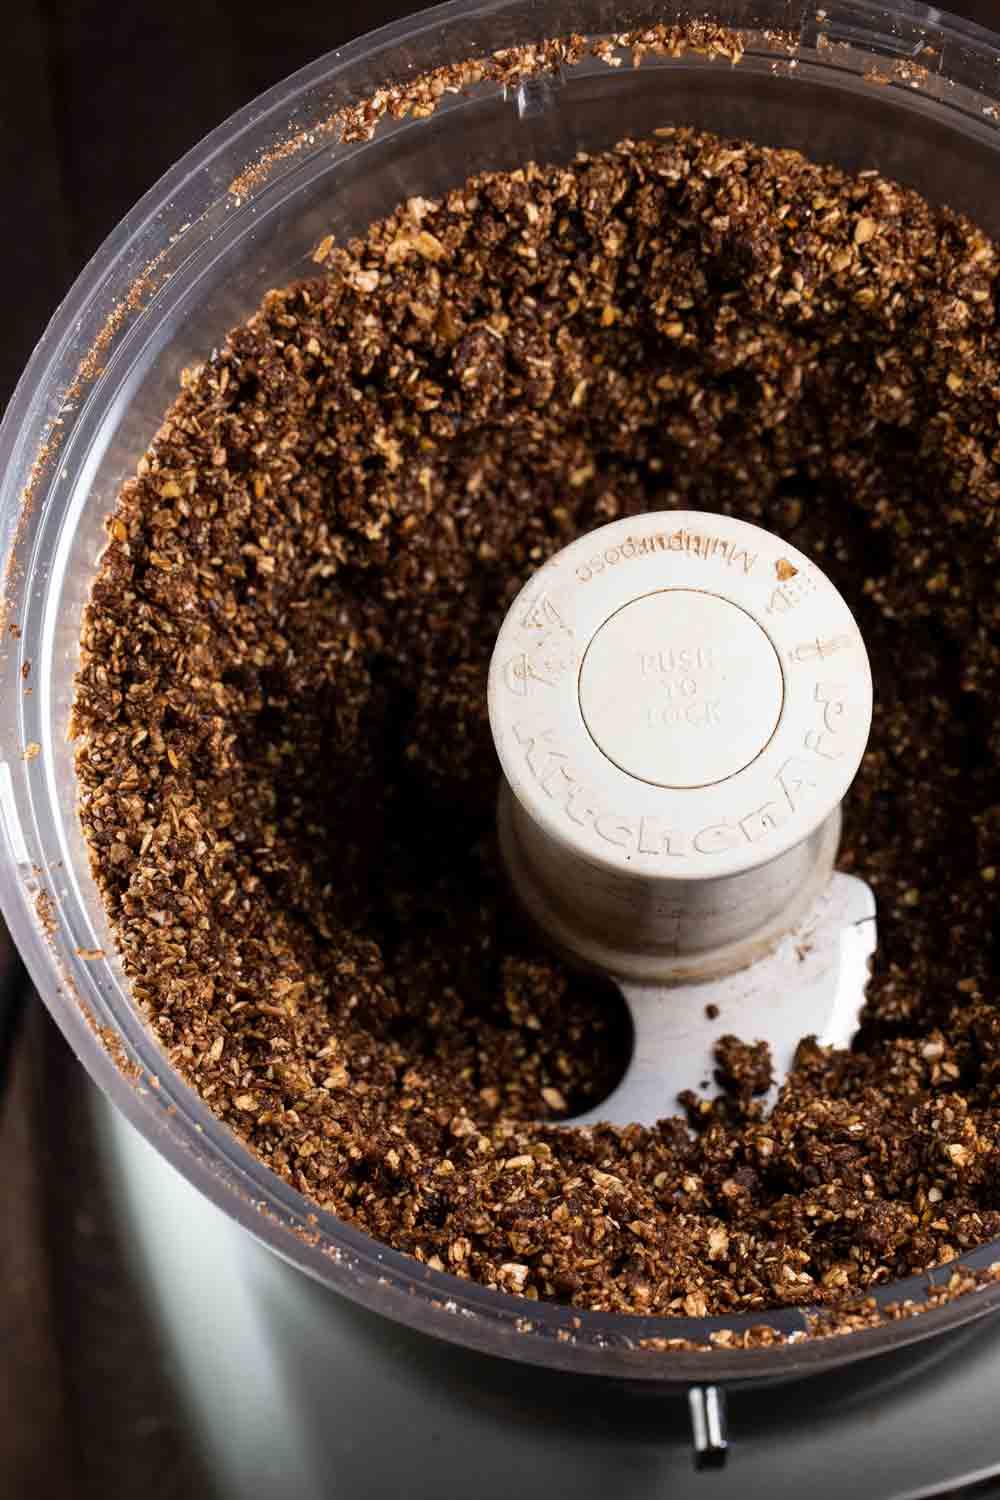 A food processor filled with a mix of almonds, cocoa, coconut oil, and flax seed.